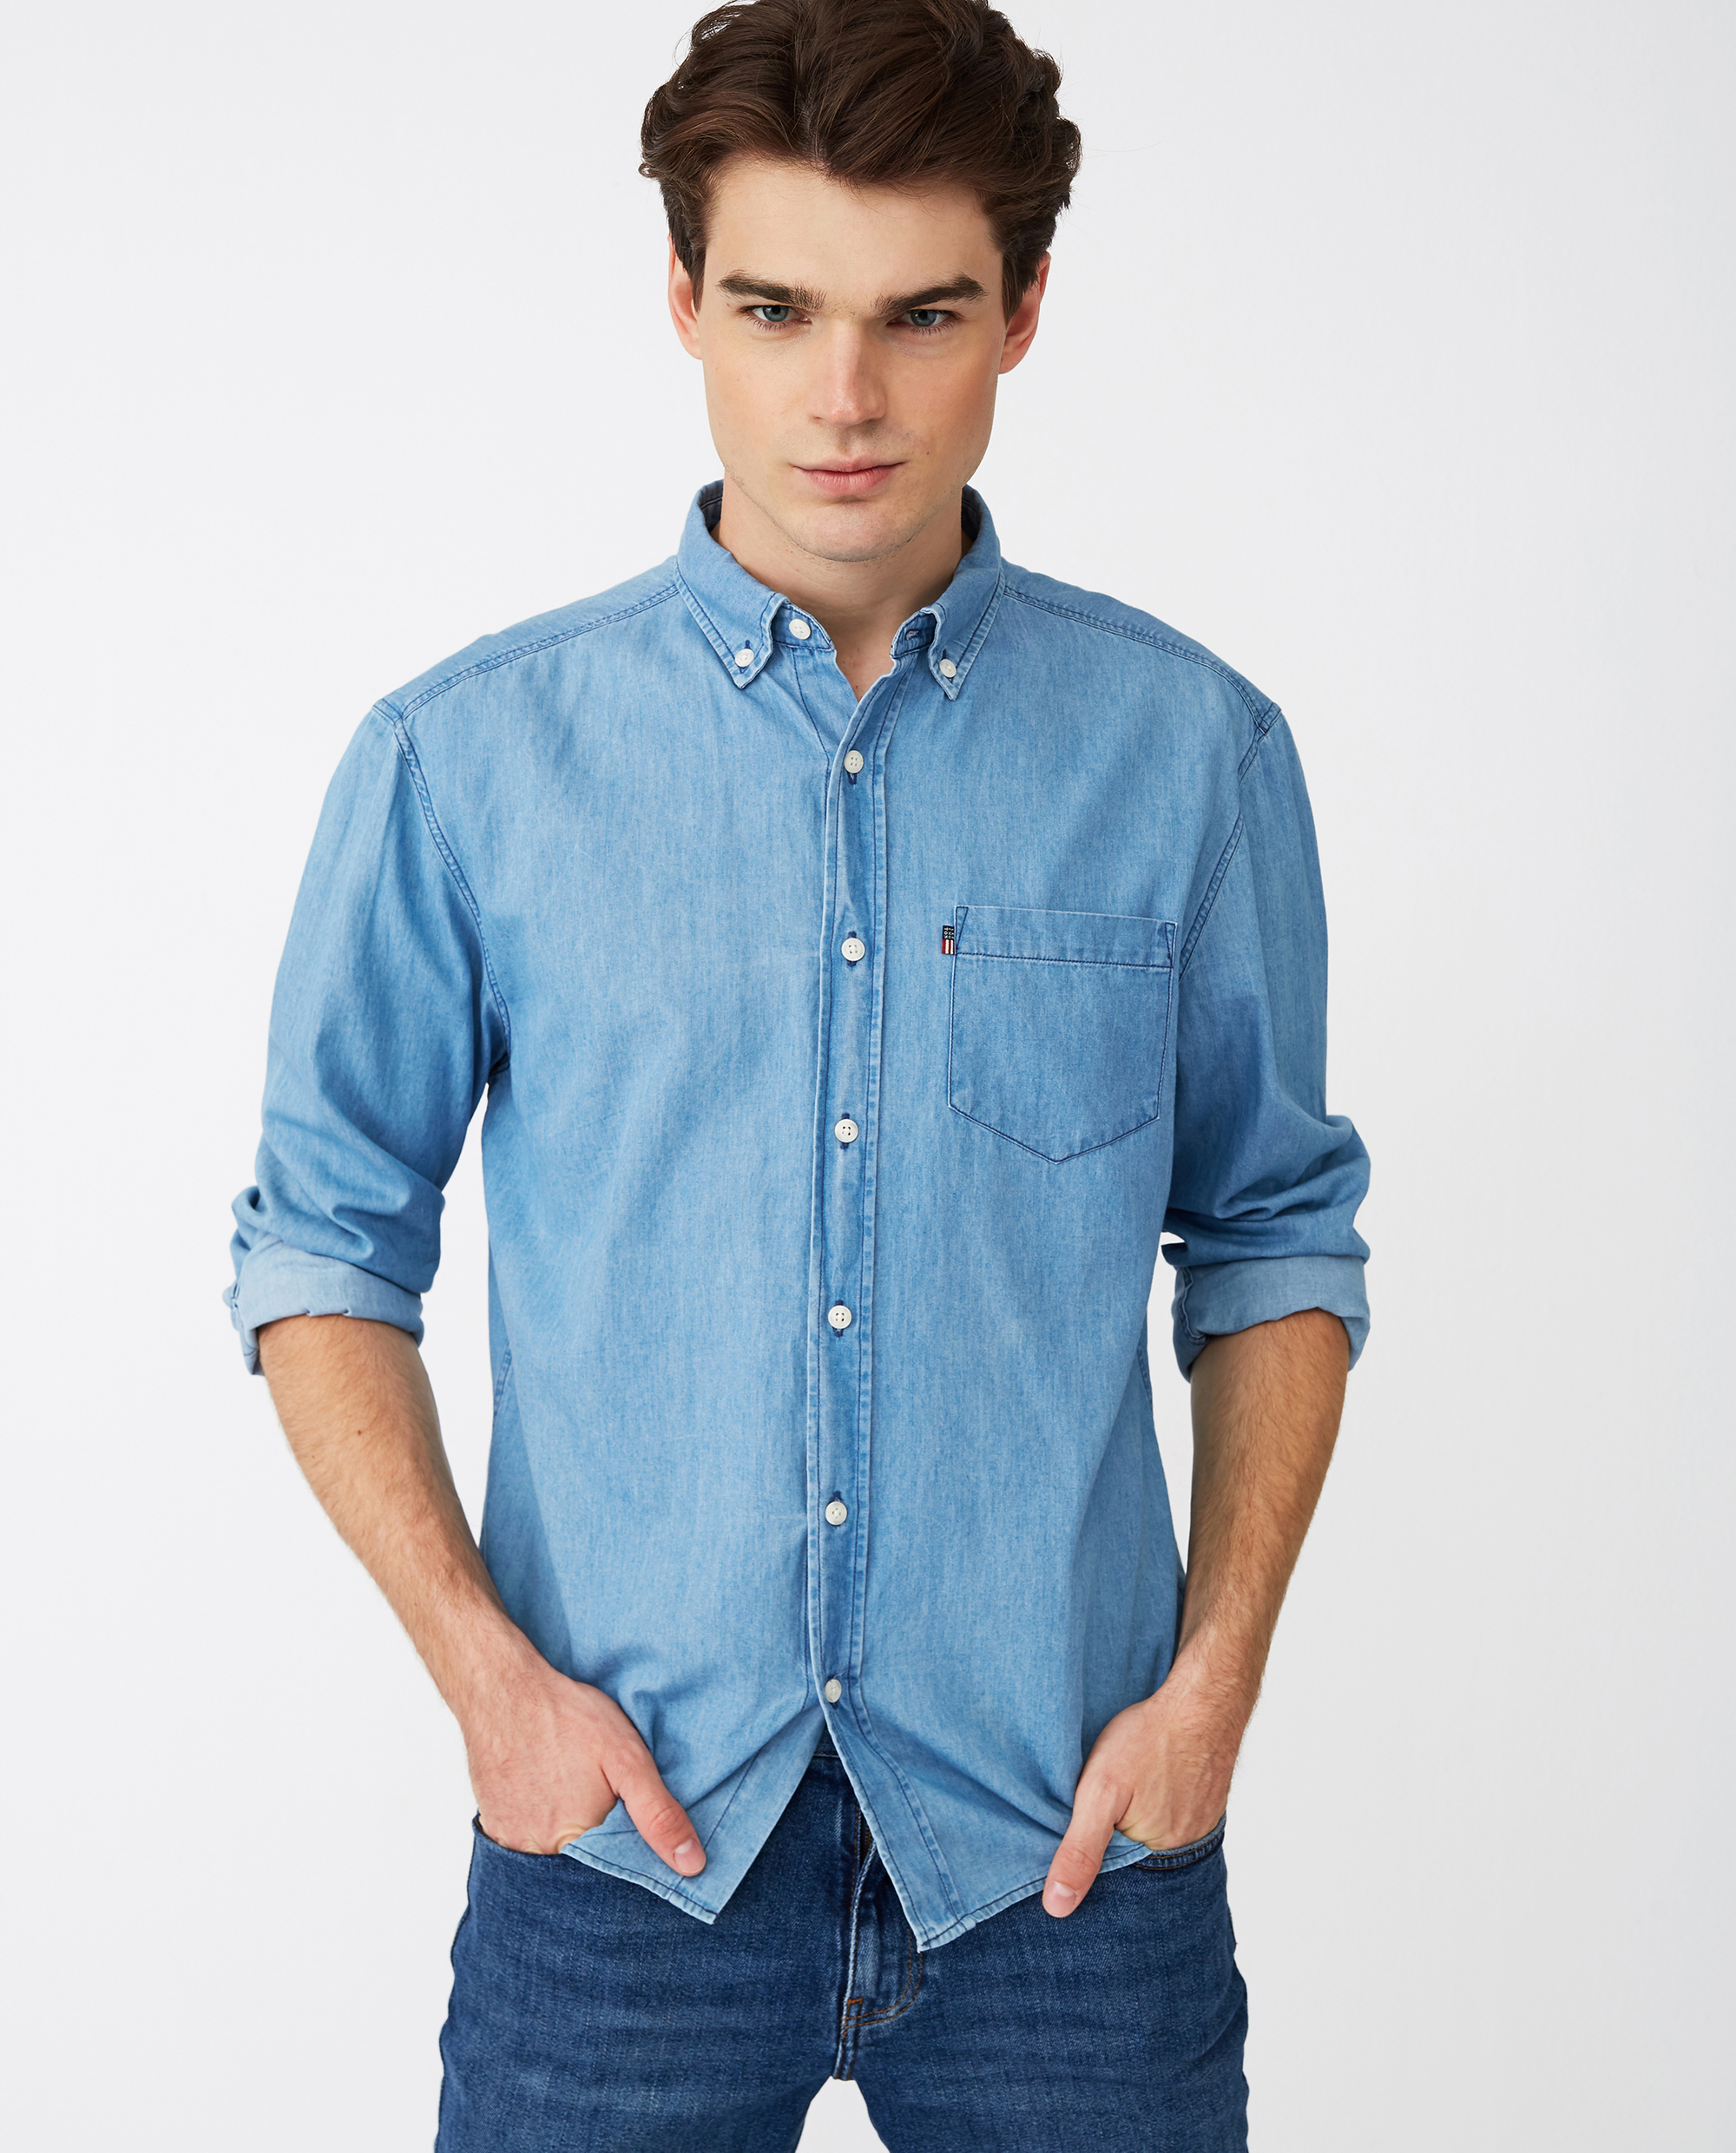 Clive Shirt, Lt Blue Denim